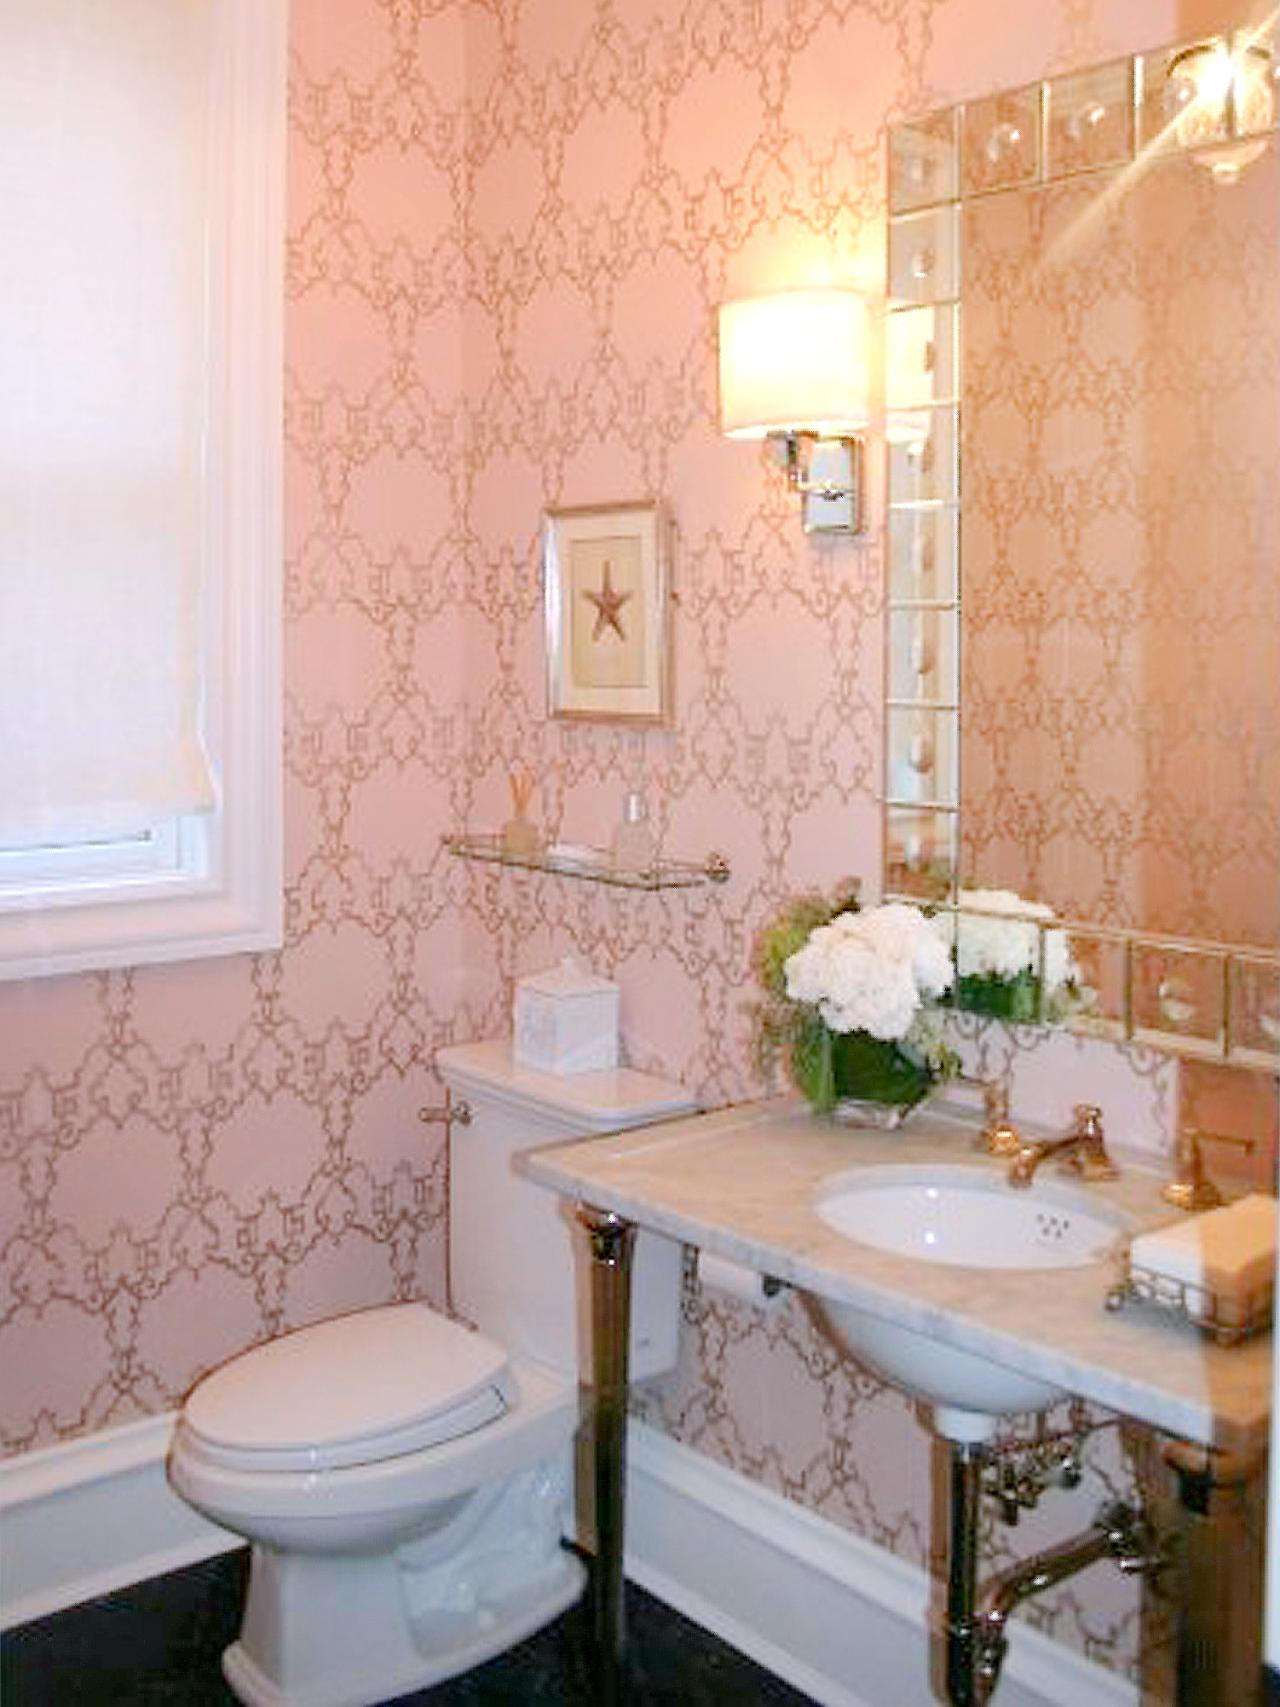 Unique 90 retro pink tile bathroom ideas decorating Pink bathroom ideas pictures